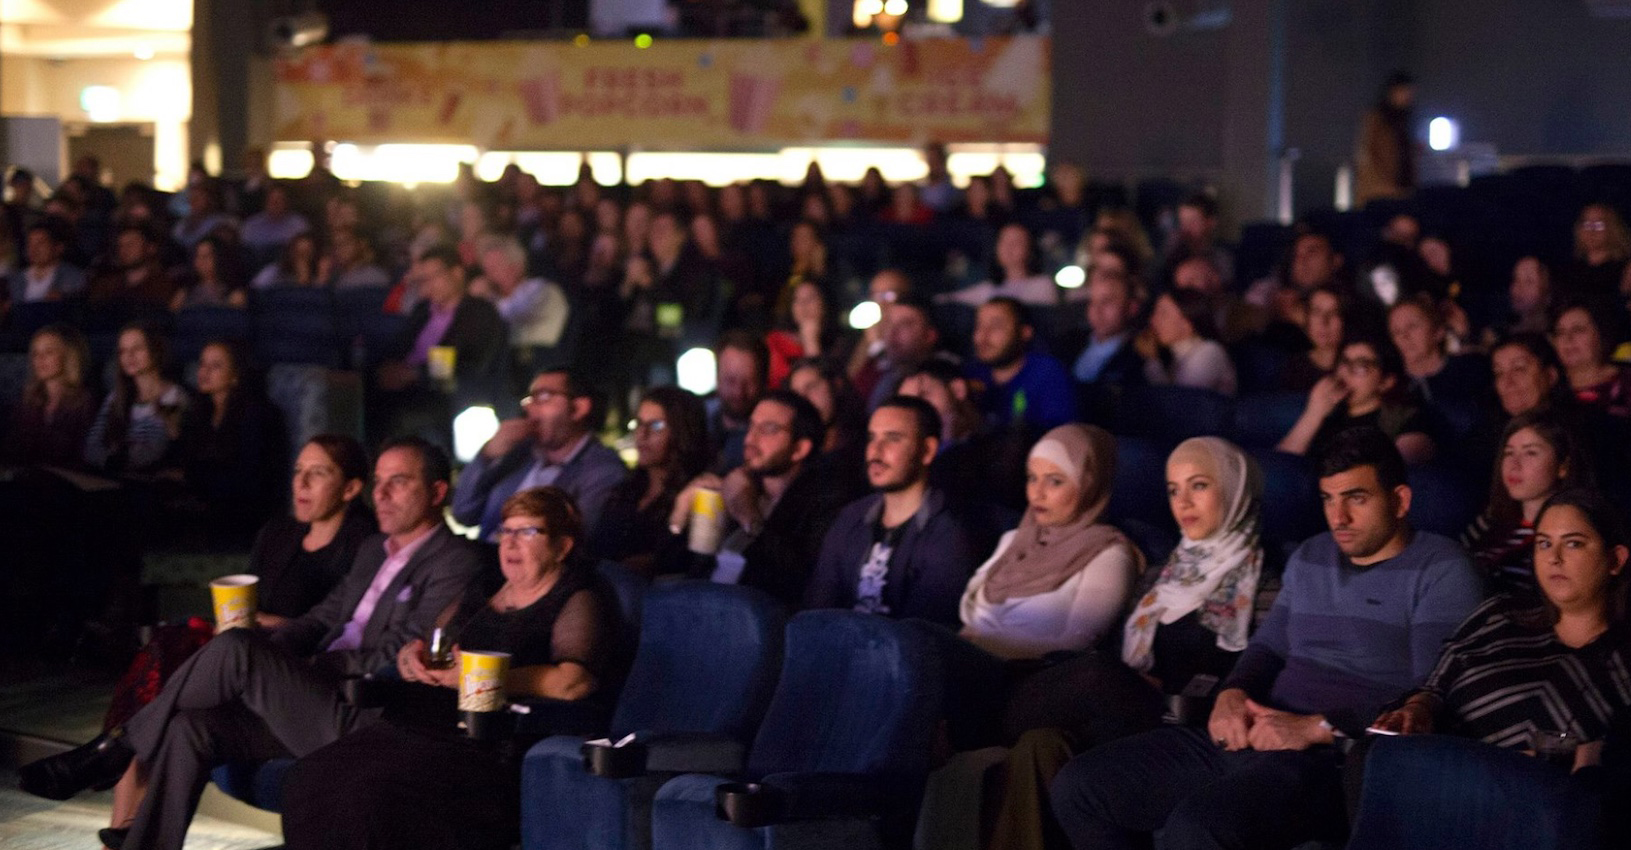 It's back! Thousands of film-goers are heading to Bankstown to participate in the cultural experience of the Lebanese Film Festival, News